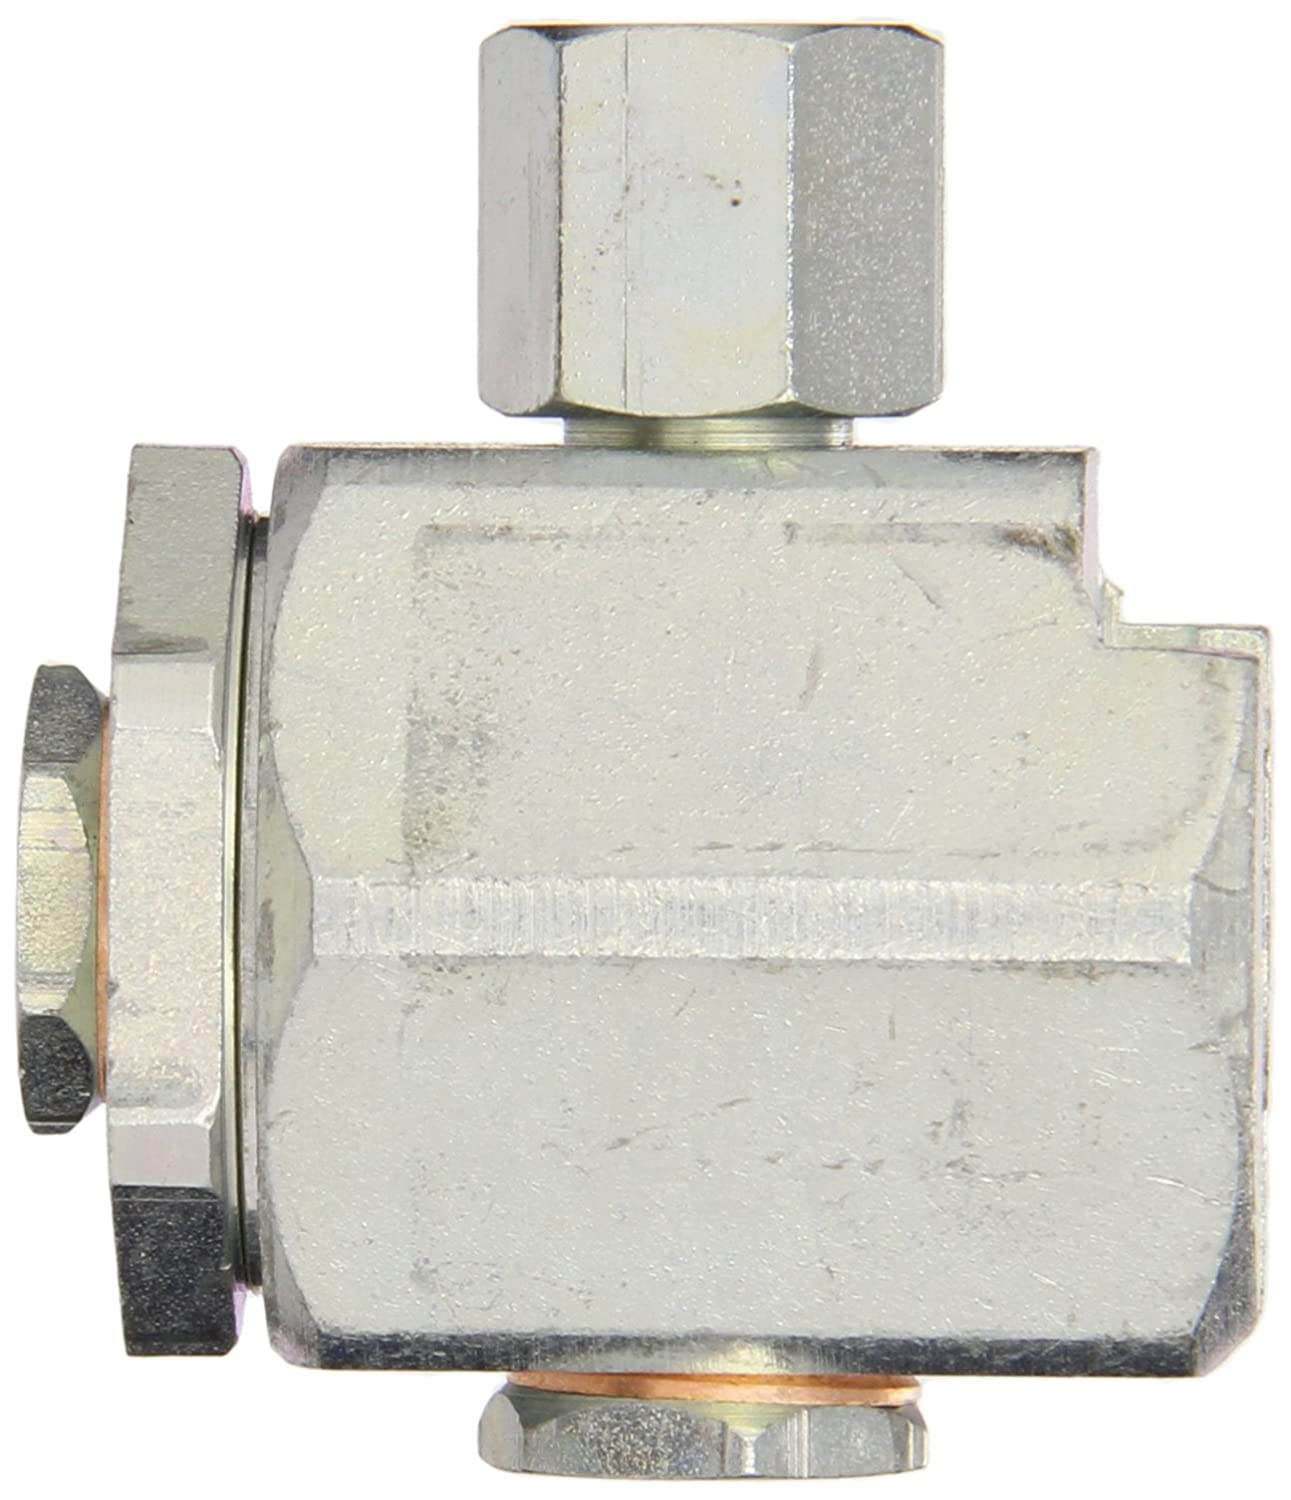 Alemite 304300-A Button Head Coupler Giant Pull-On Type Use with Standard or Giant Button Head Fittings 1//8 Female NPTF 1//8 Female NPTF